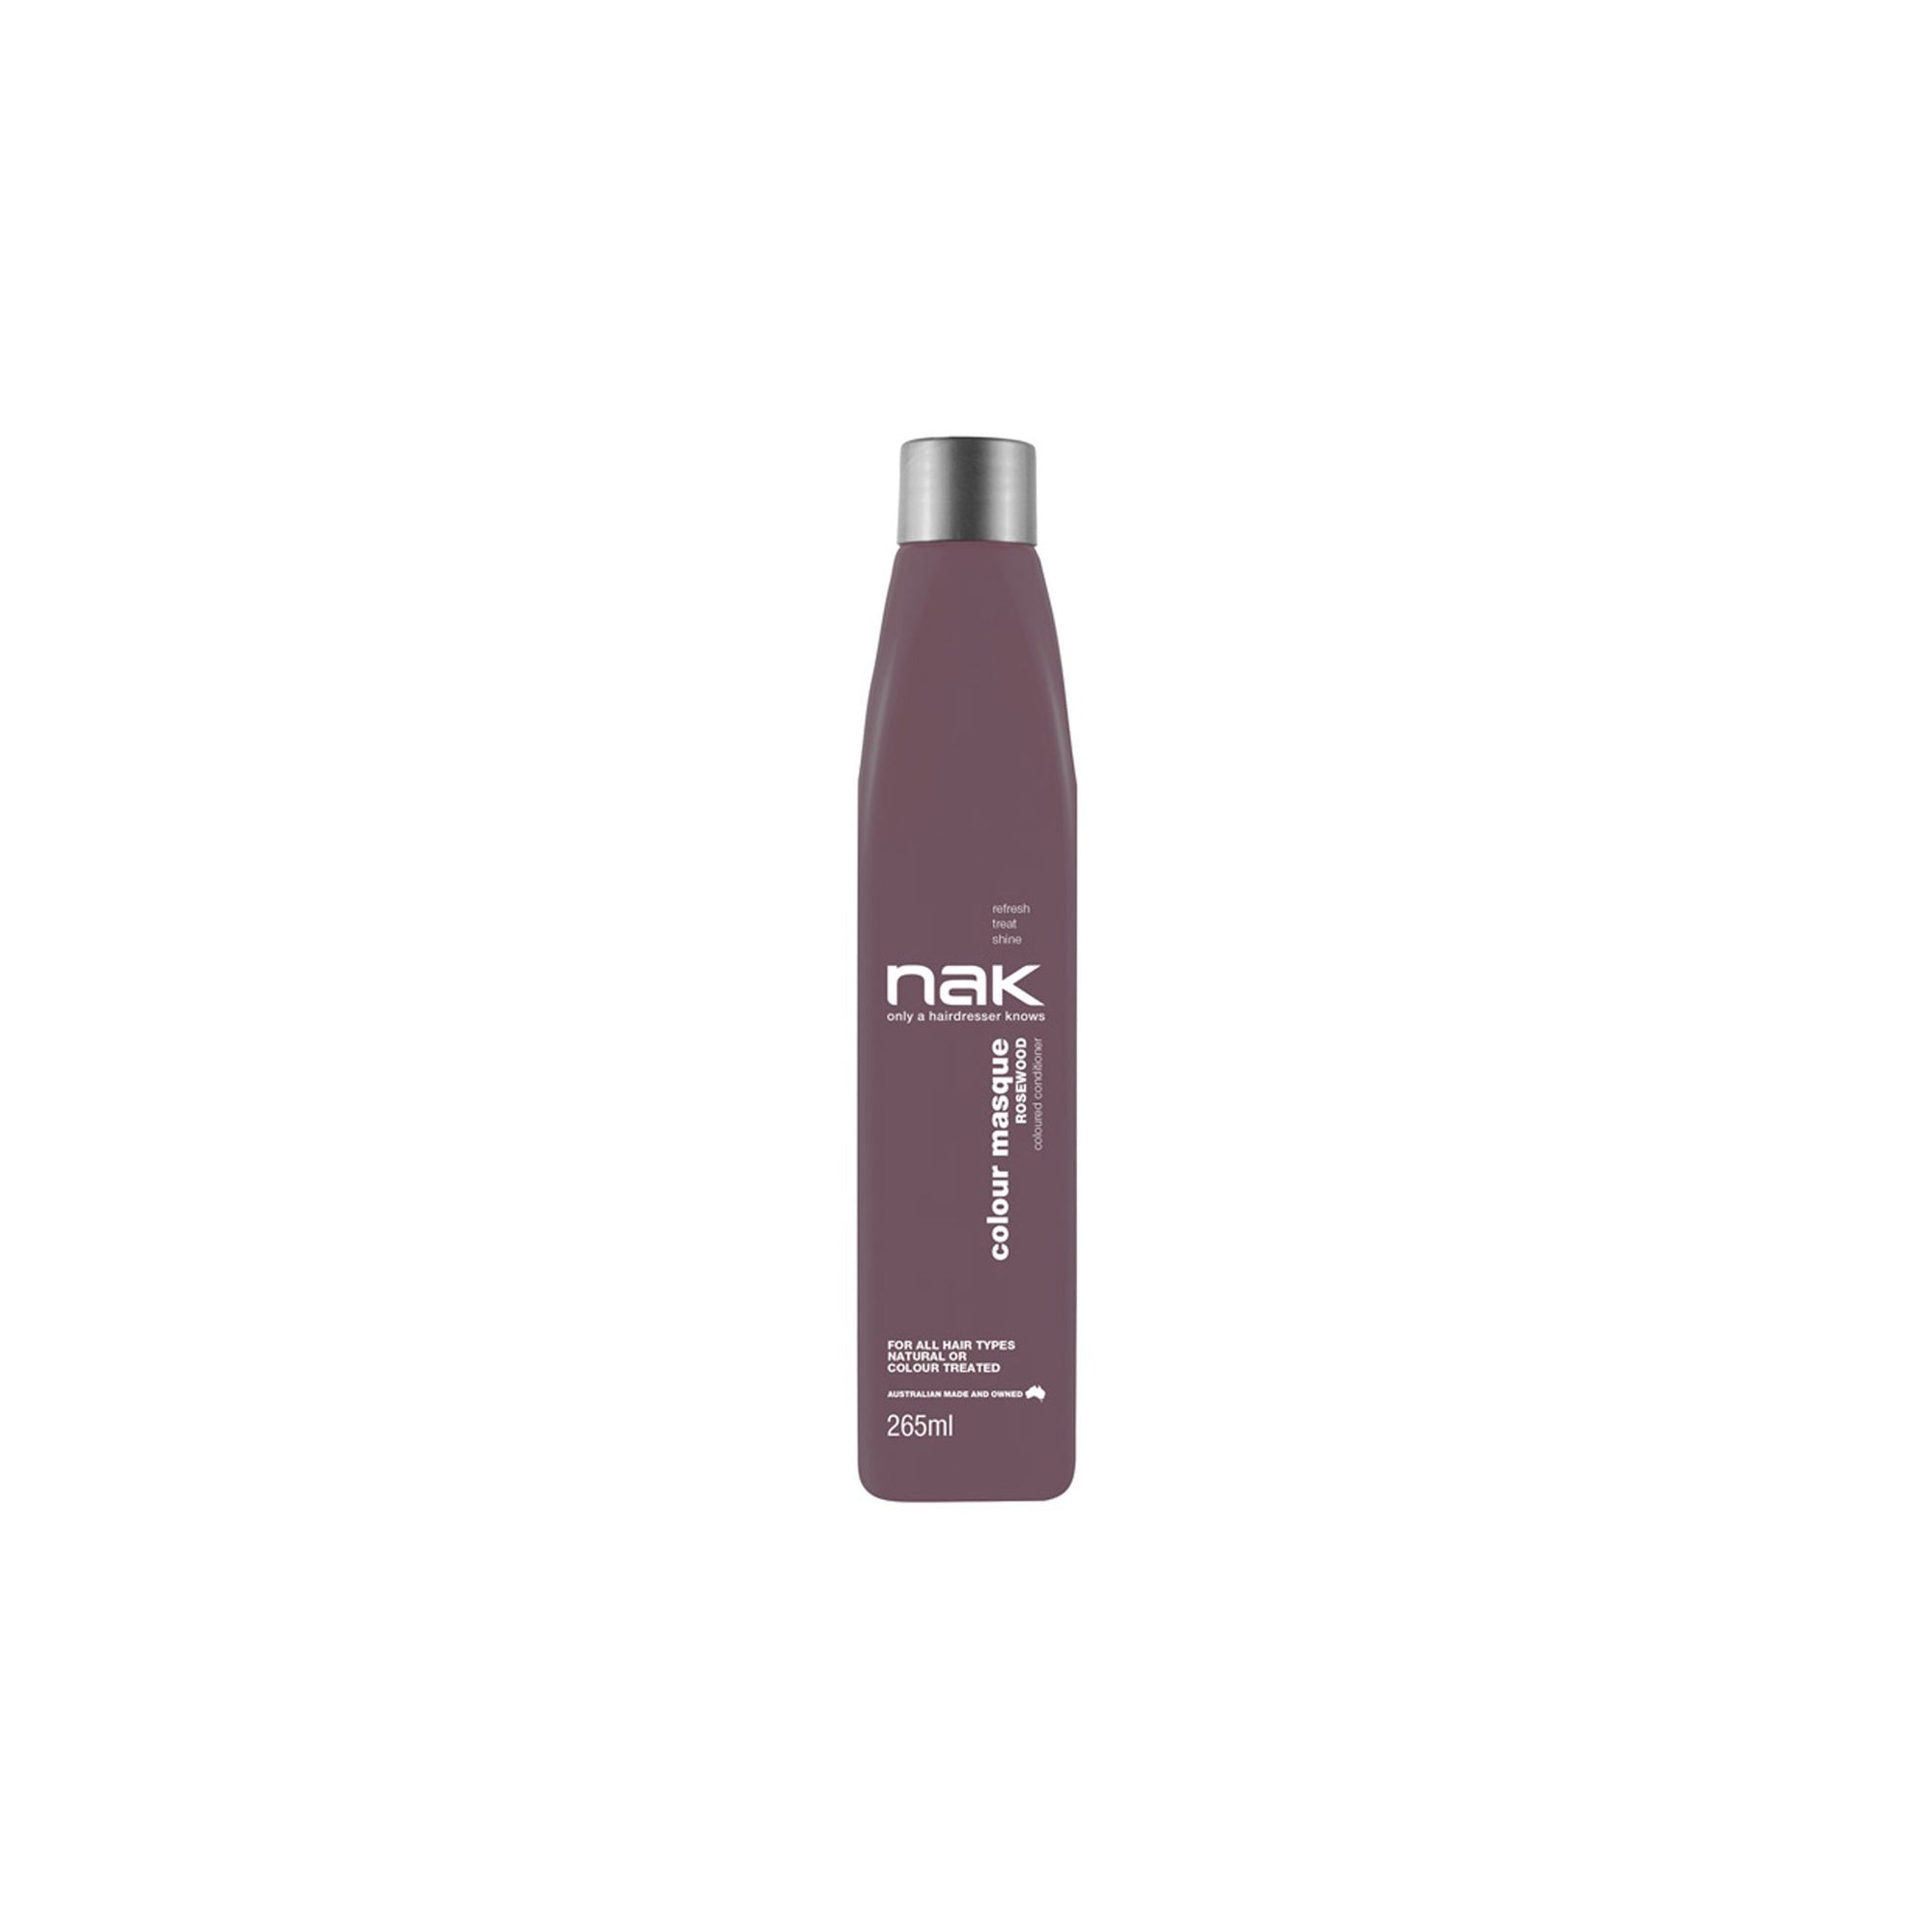 Nak Colour Masque Rosewood Conditioner 265ml